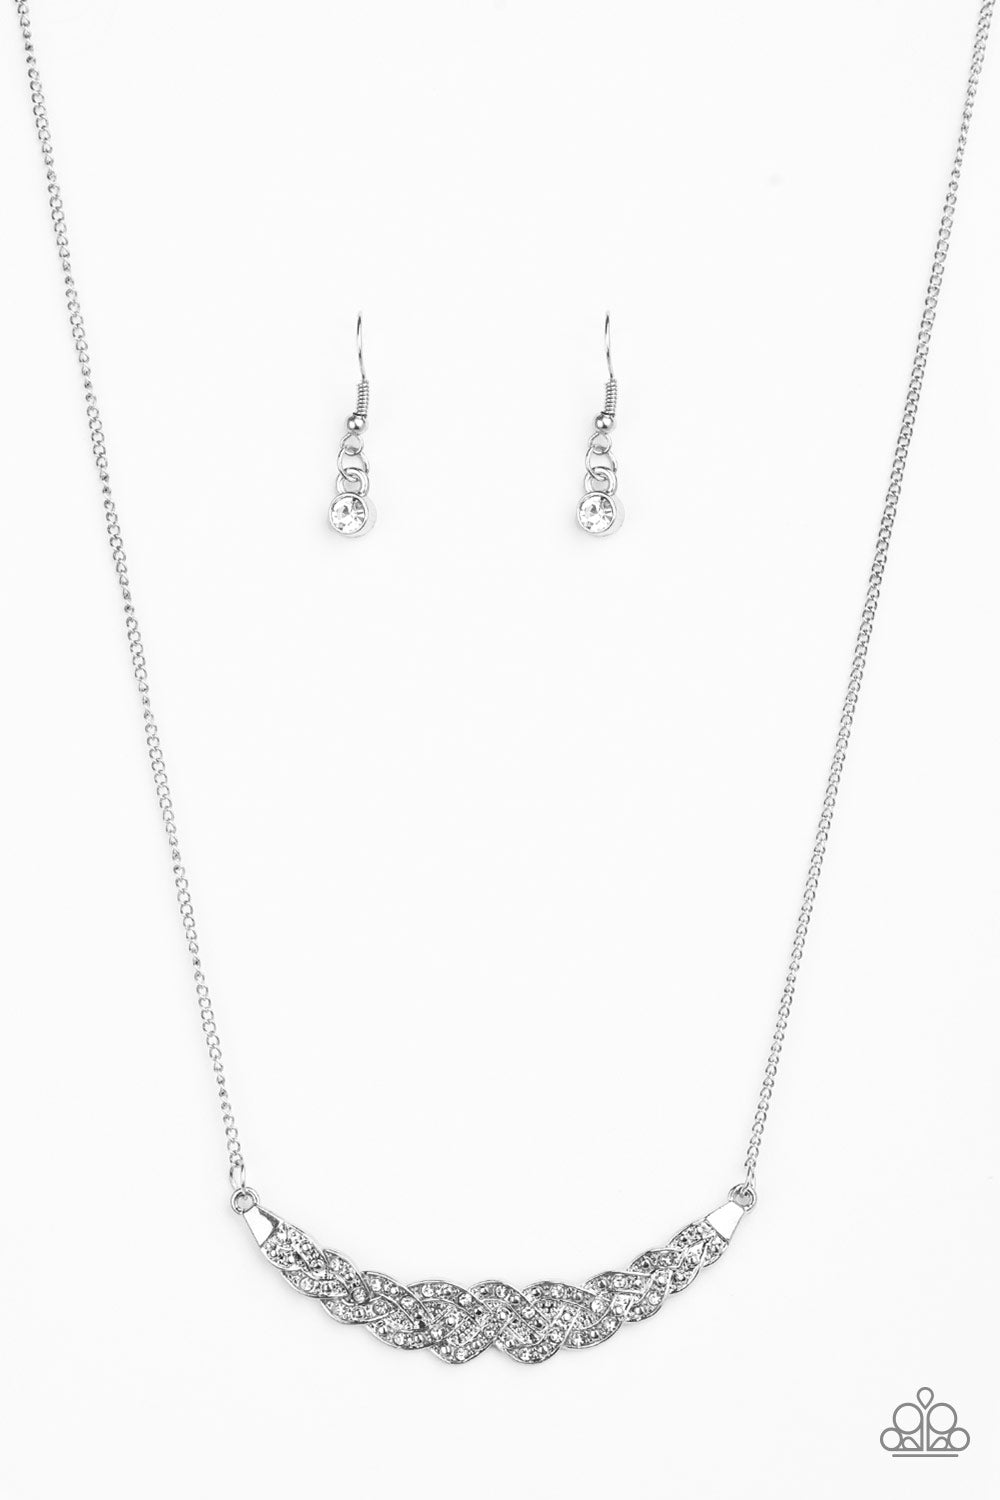 Whatever Floats Your YACHT - White Rhinestone Pendant Necklace - The Paparazzi Fox